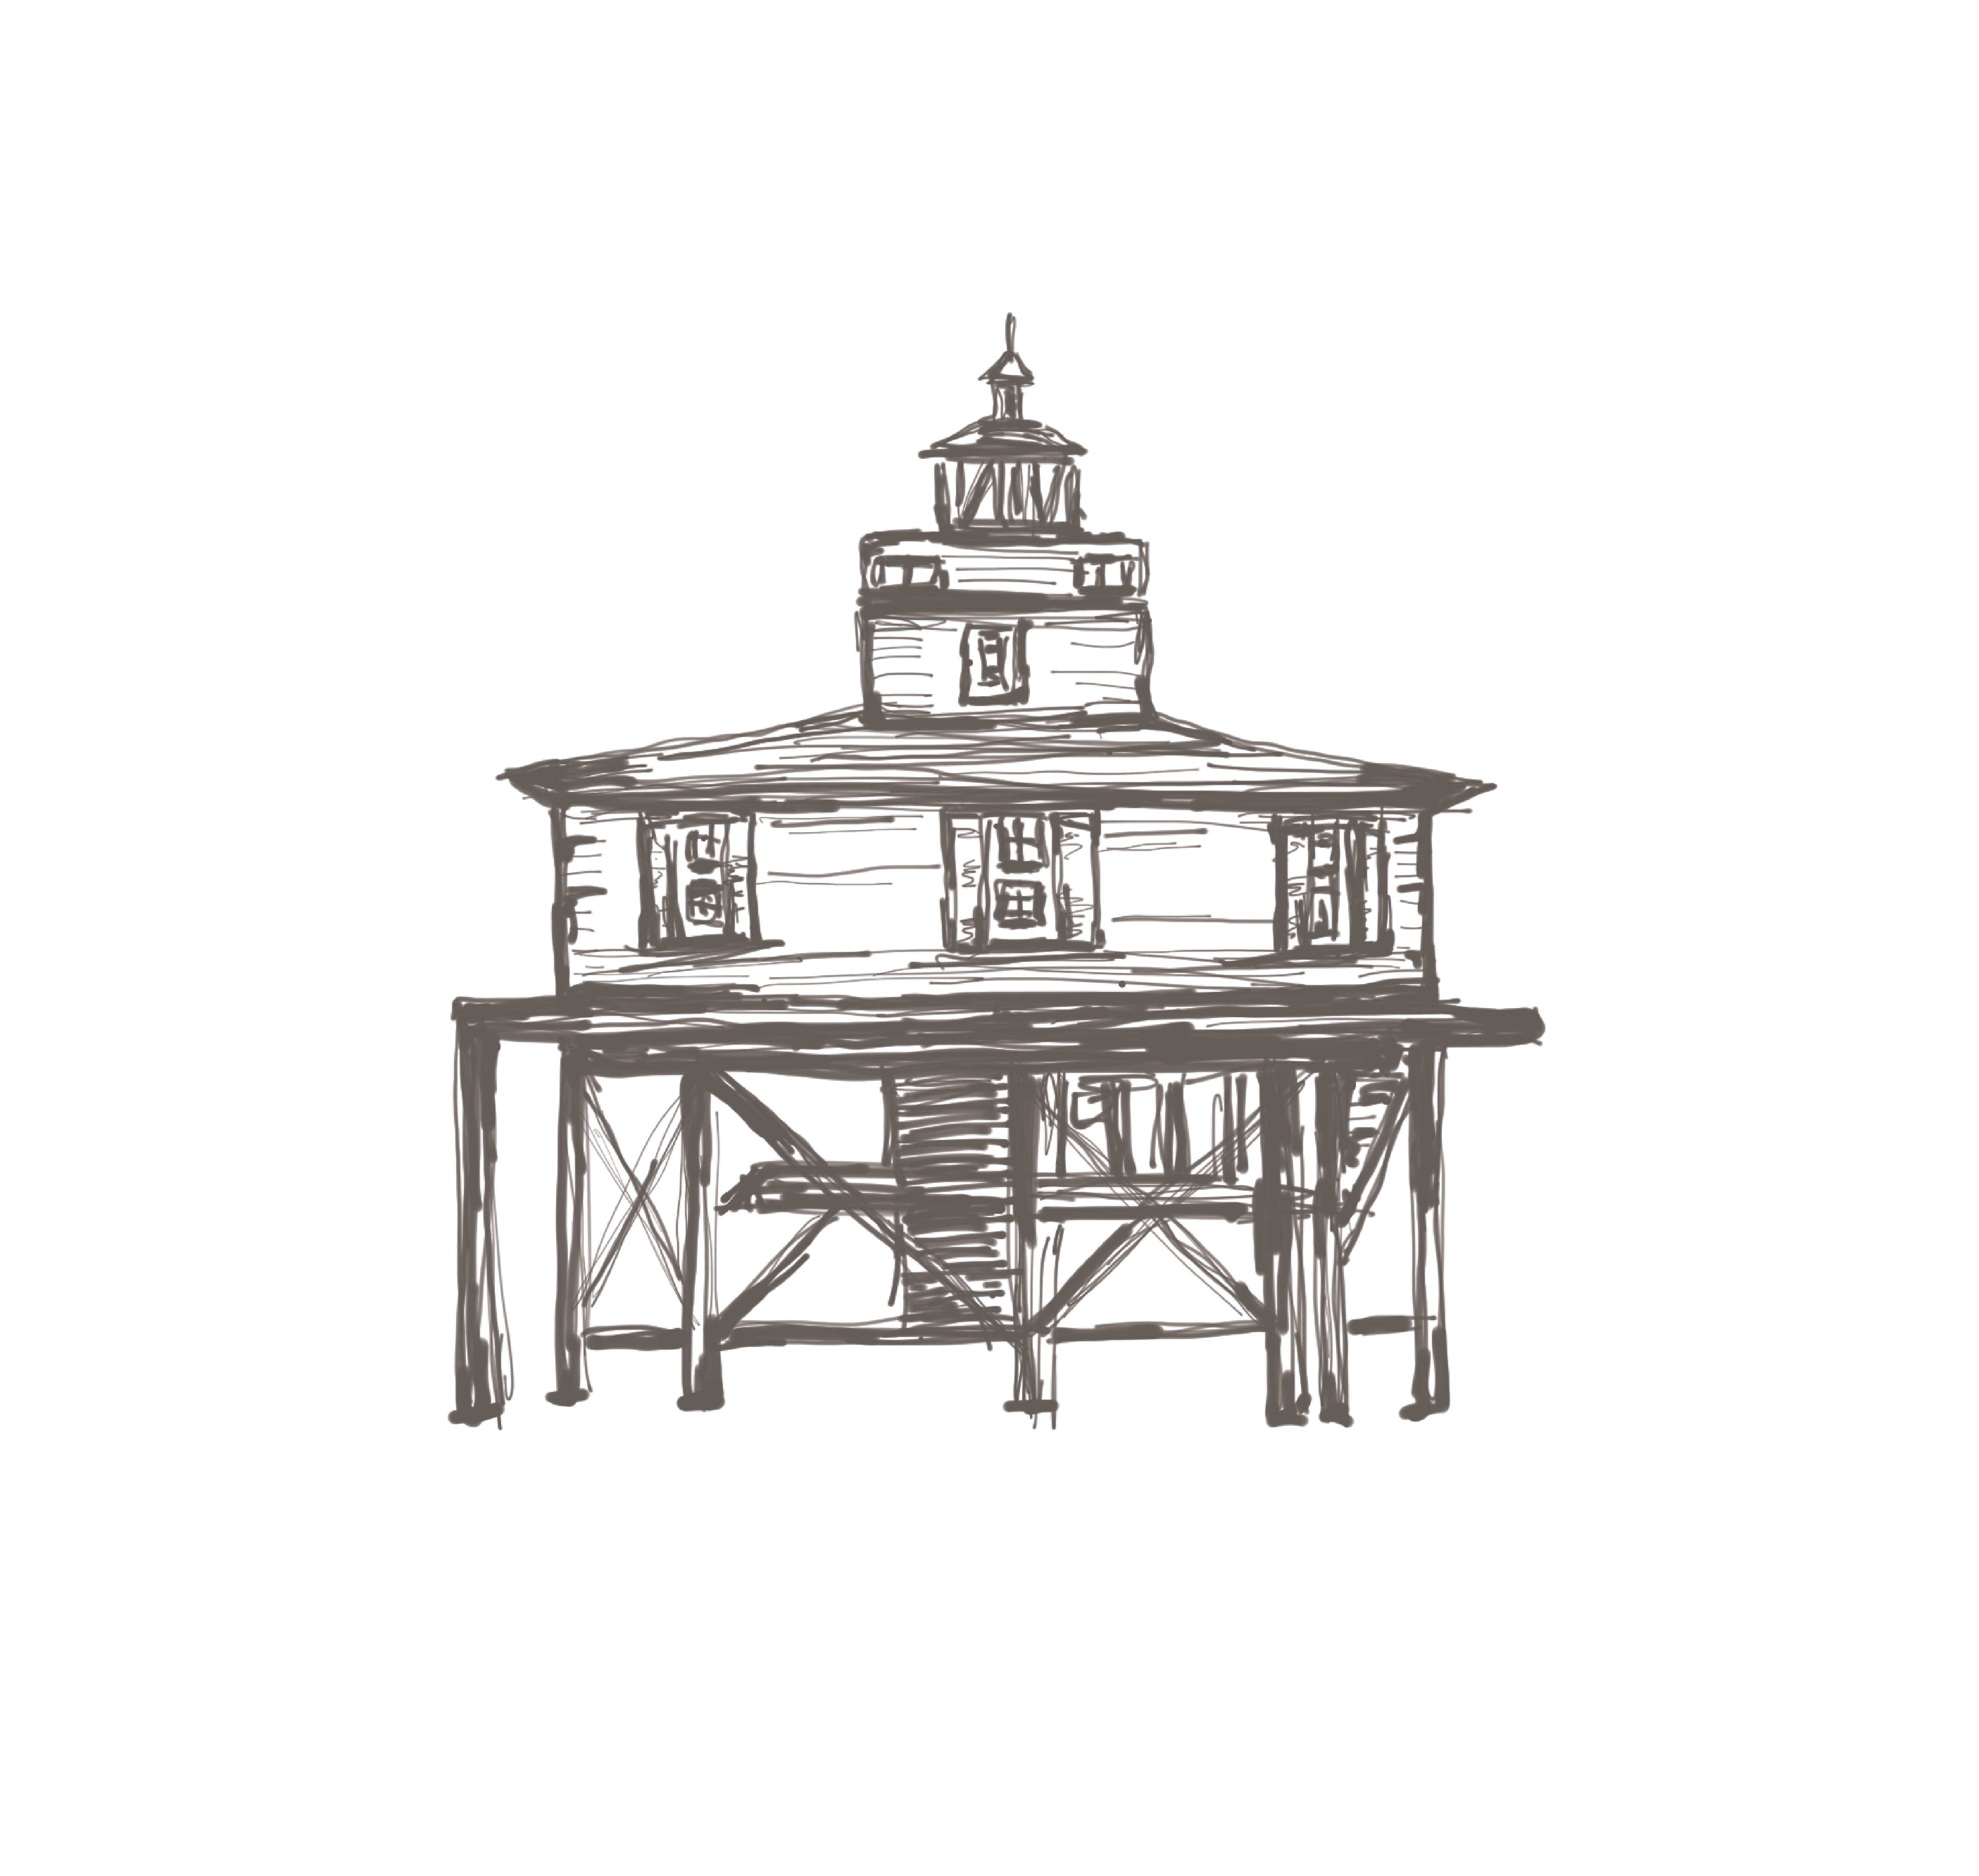 Adobe Draw with iPencil on iPad, Seven Foot Knoll Lighthouse for Wedding Invitation